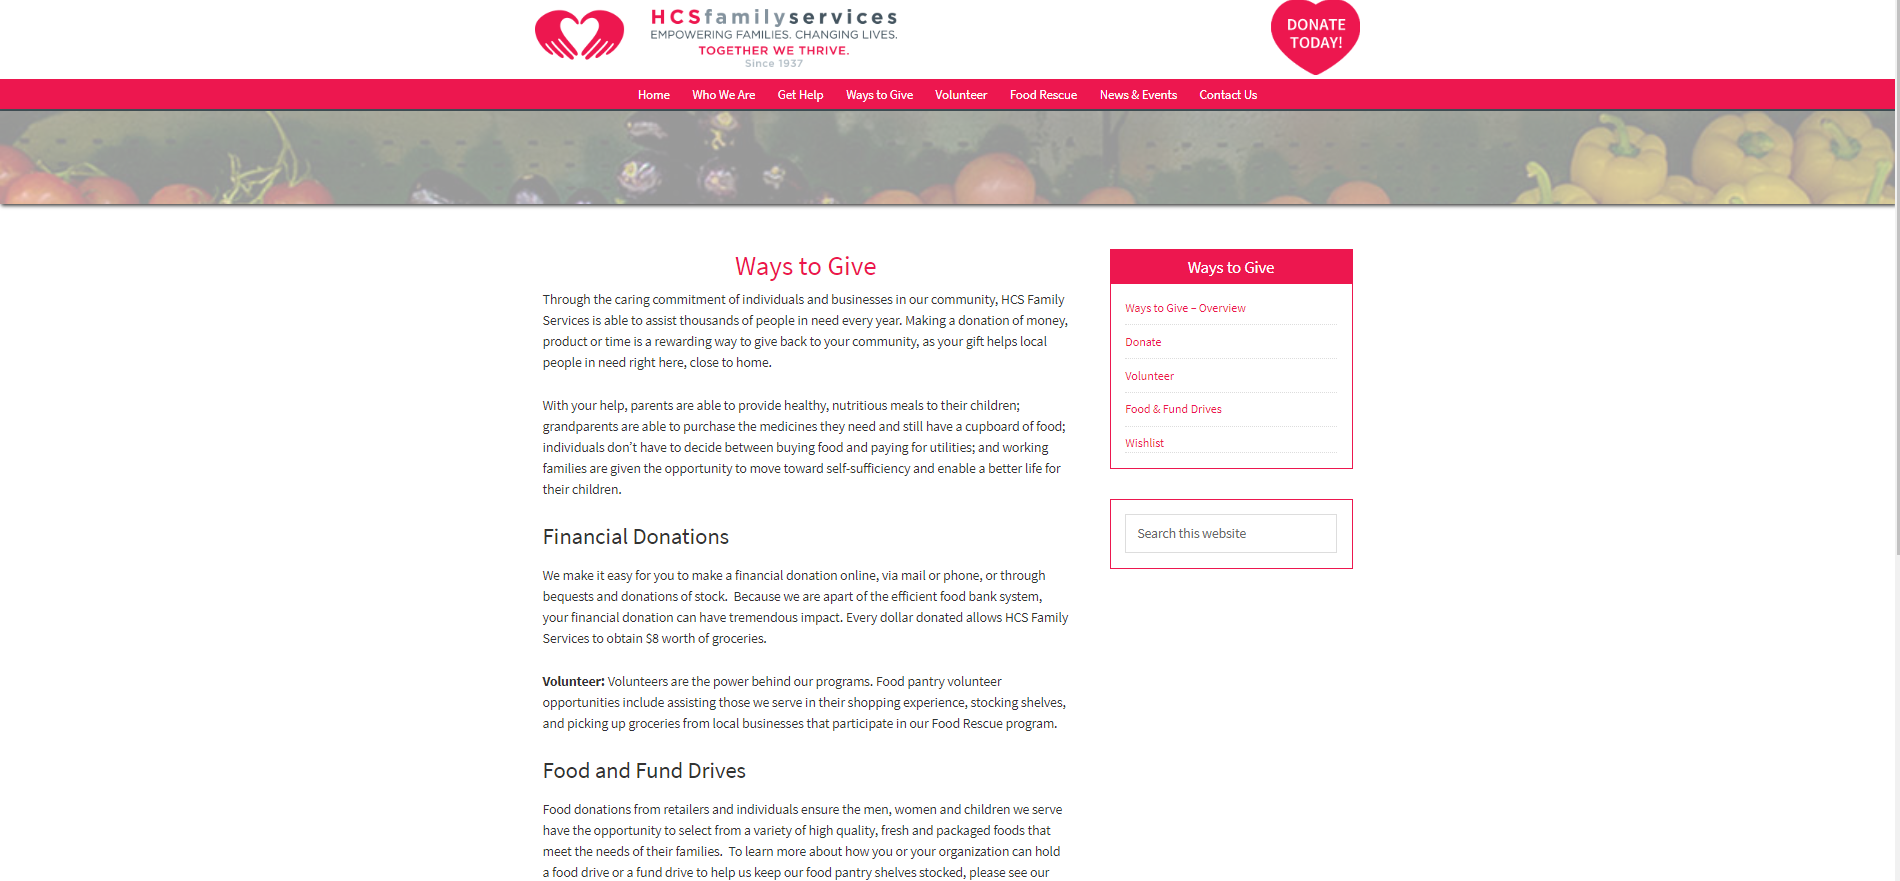 Photo of website page